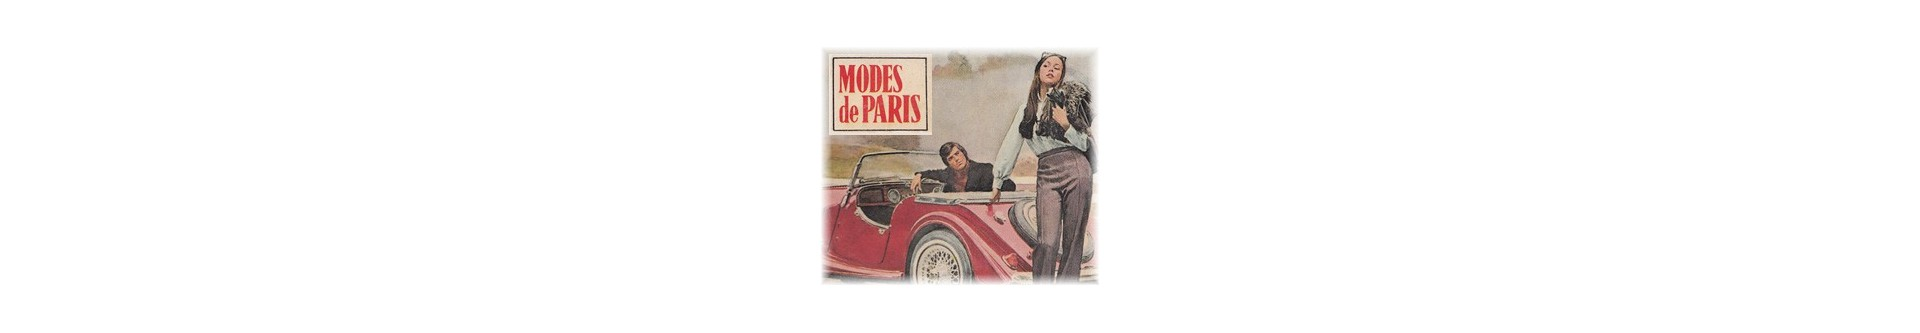 Collection Modes de Paris | Vente de livres d'occasion